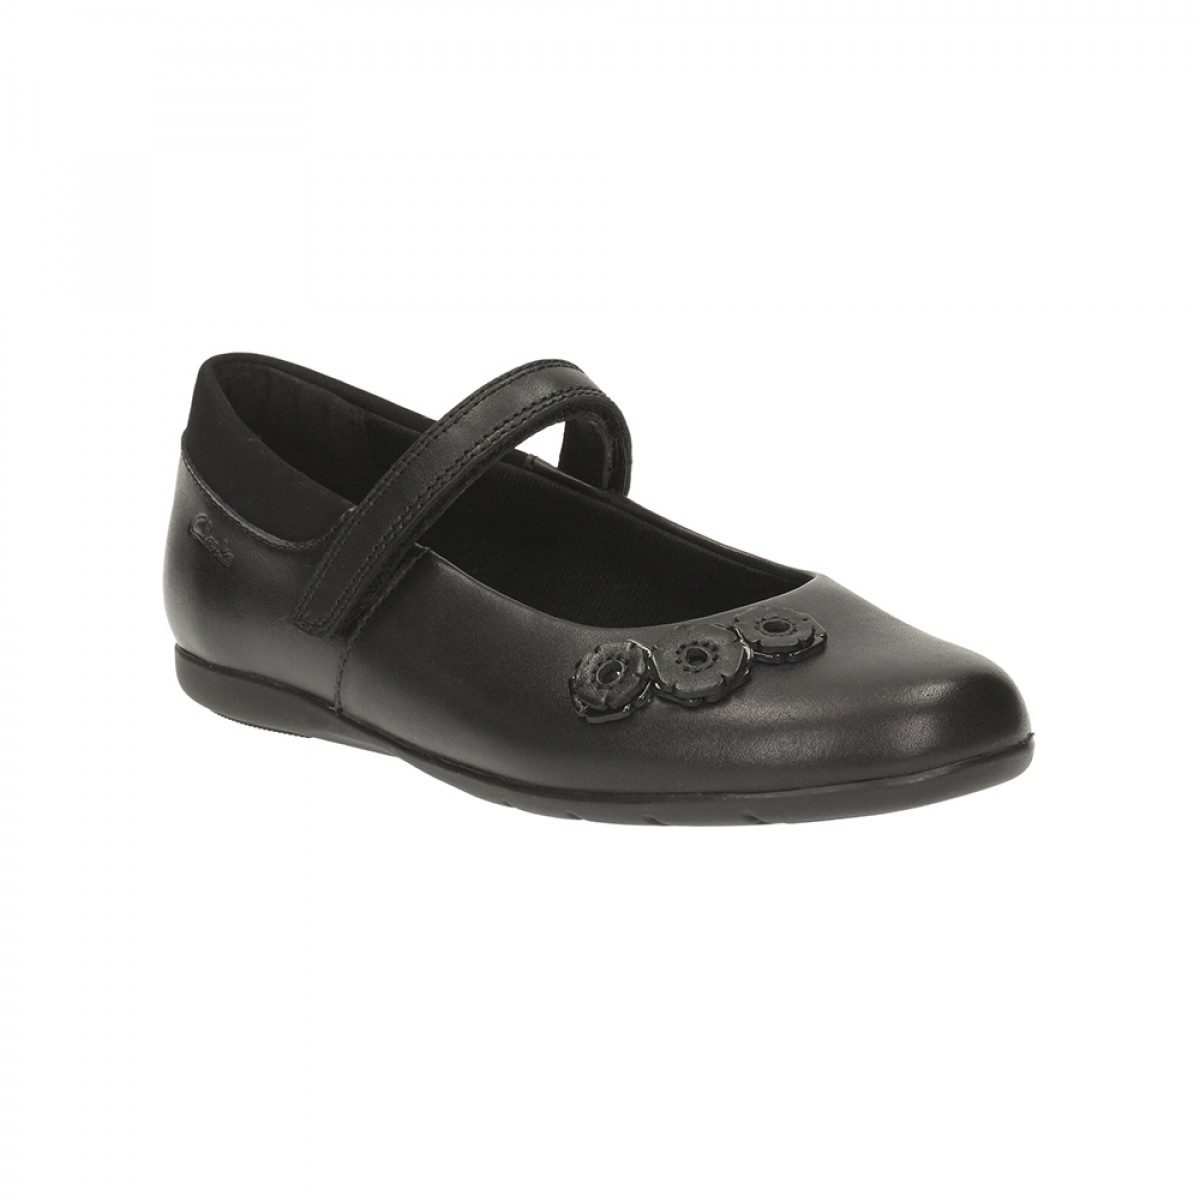 Clarks School Shoes For Toddlers